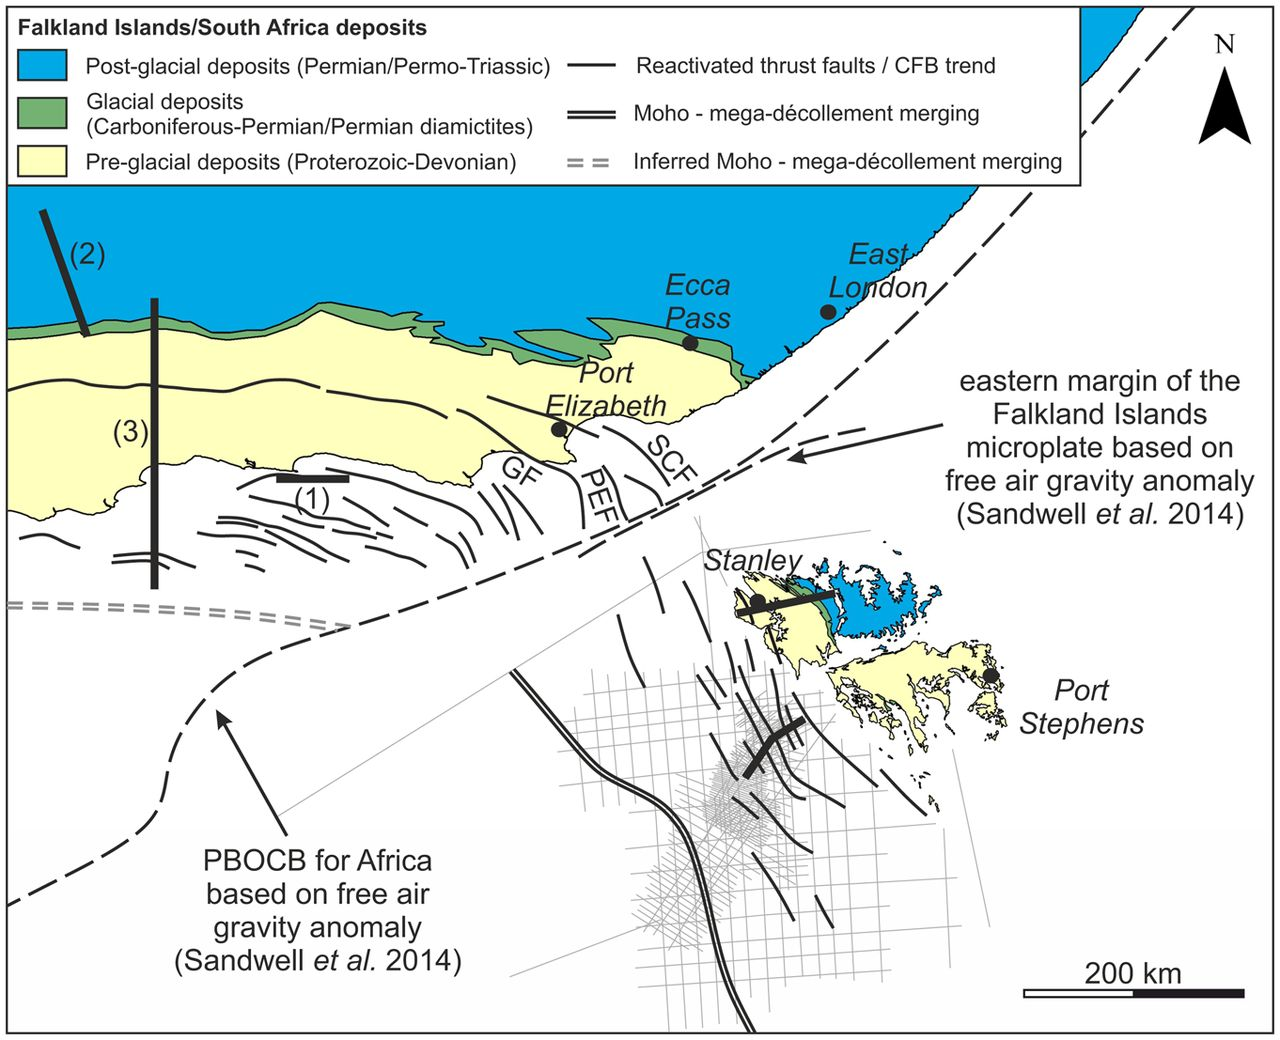 A revised position for the rotated Falkland Islands microplate